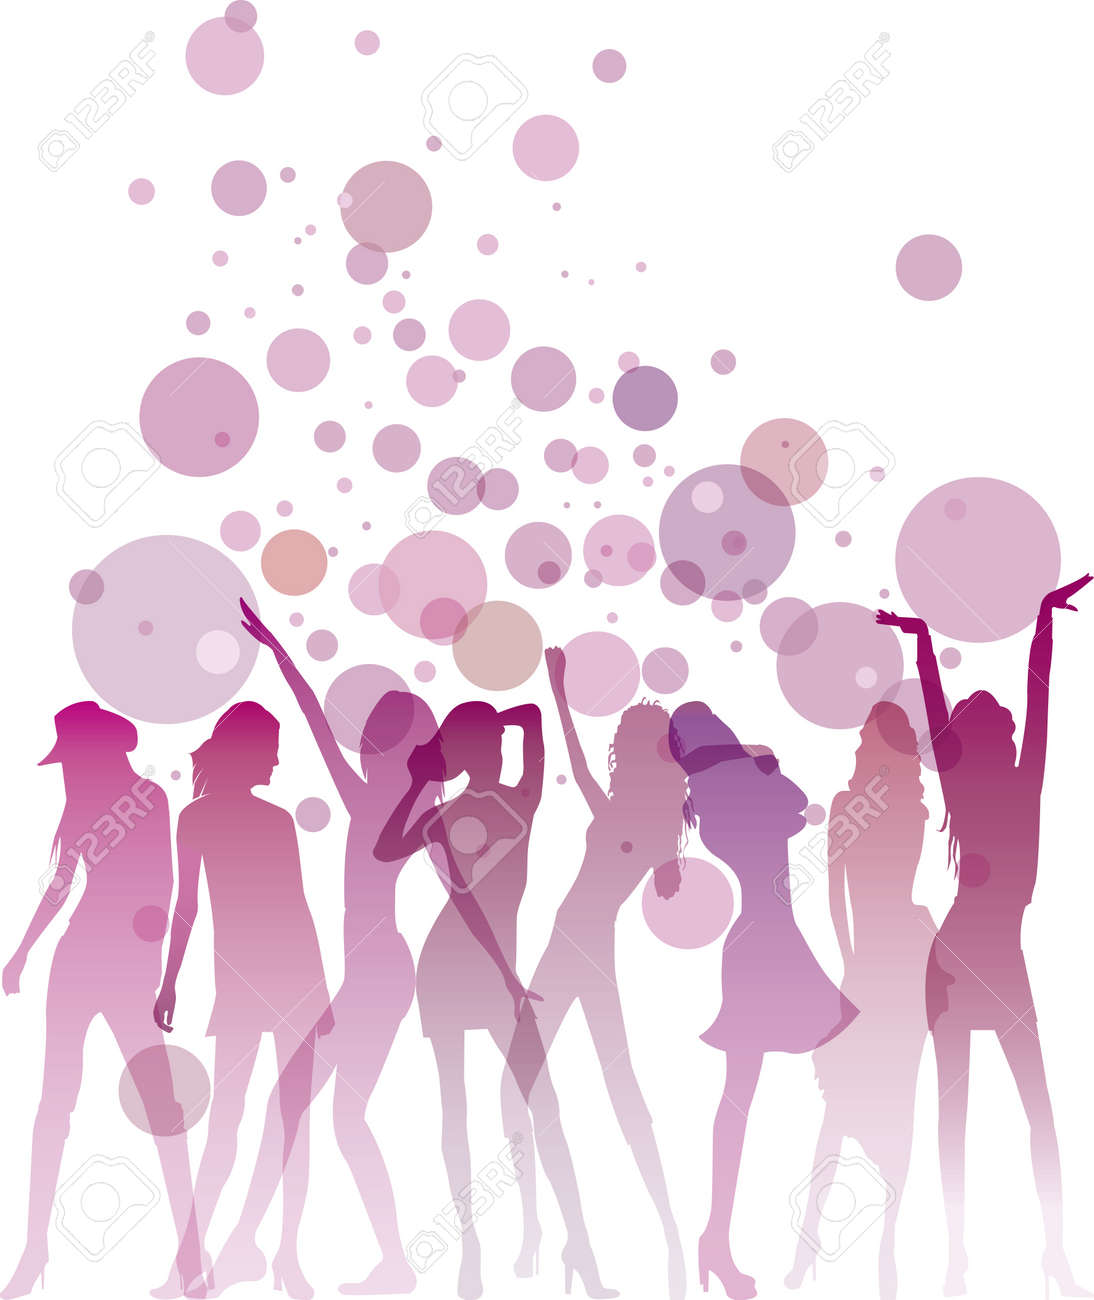 Dancing woman silhouettes with bubbles and copy space Stock Vector - 16229725